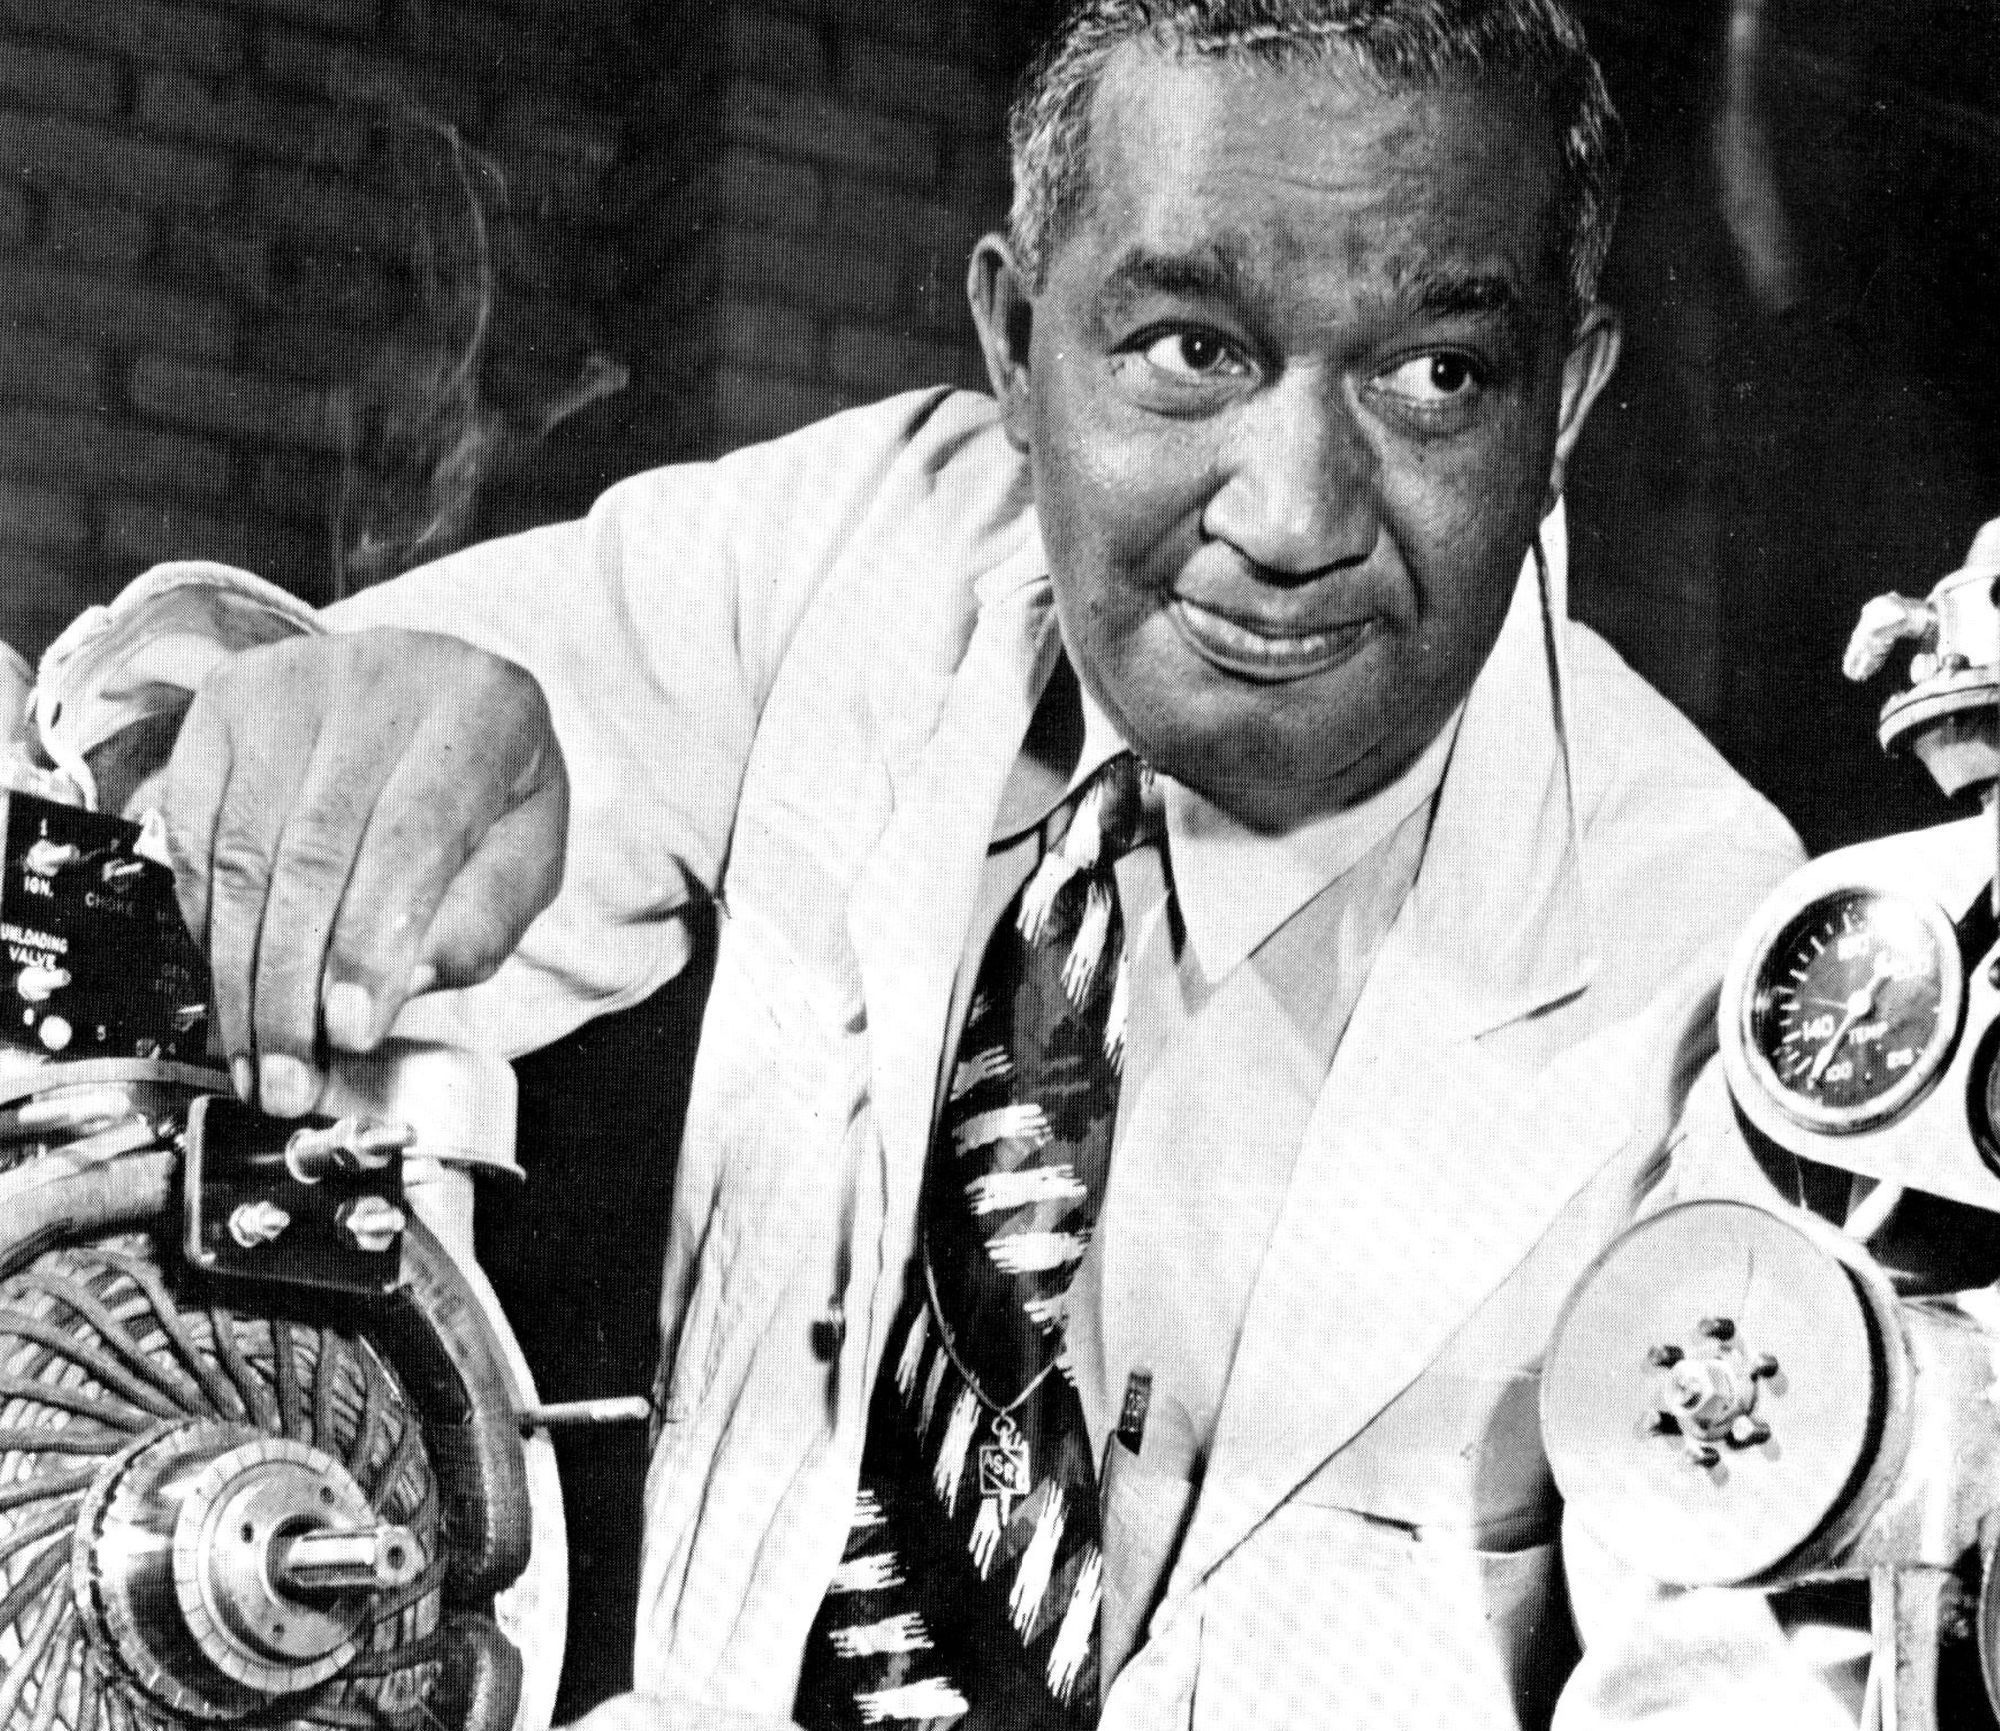 frederick mckinley jones Frederick mckinley jones (may 17, 1893 – february 21, 1961) was an african-american inventor, entrepreneur, winner of the national medal of technology, and inductee of the national inventors hall of fame.